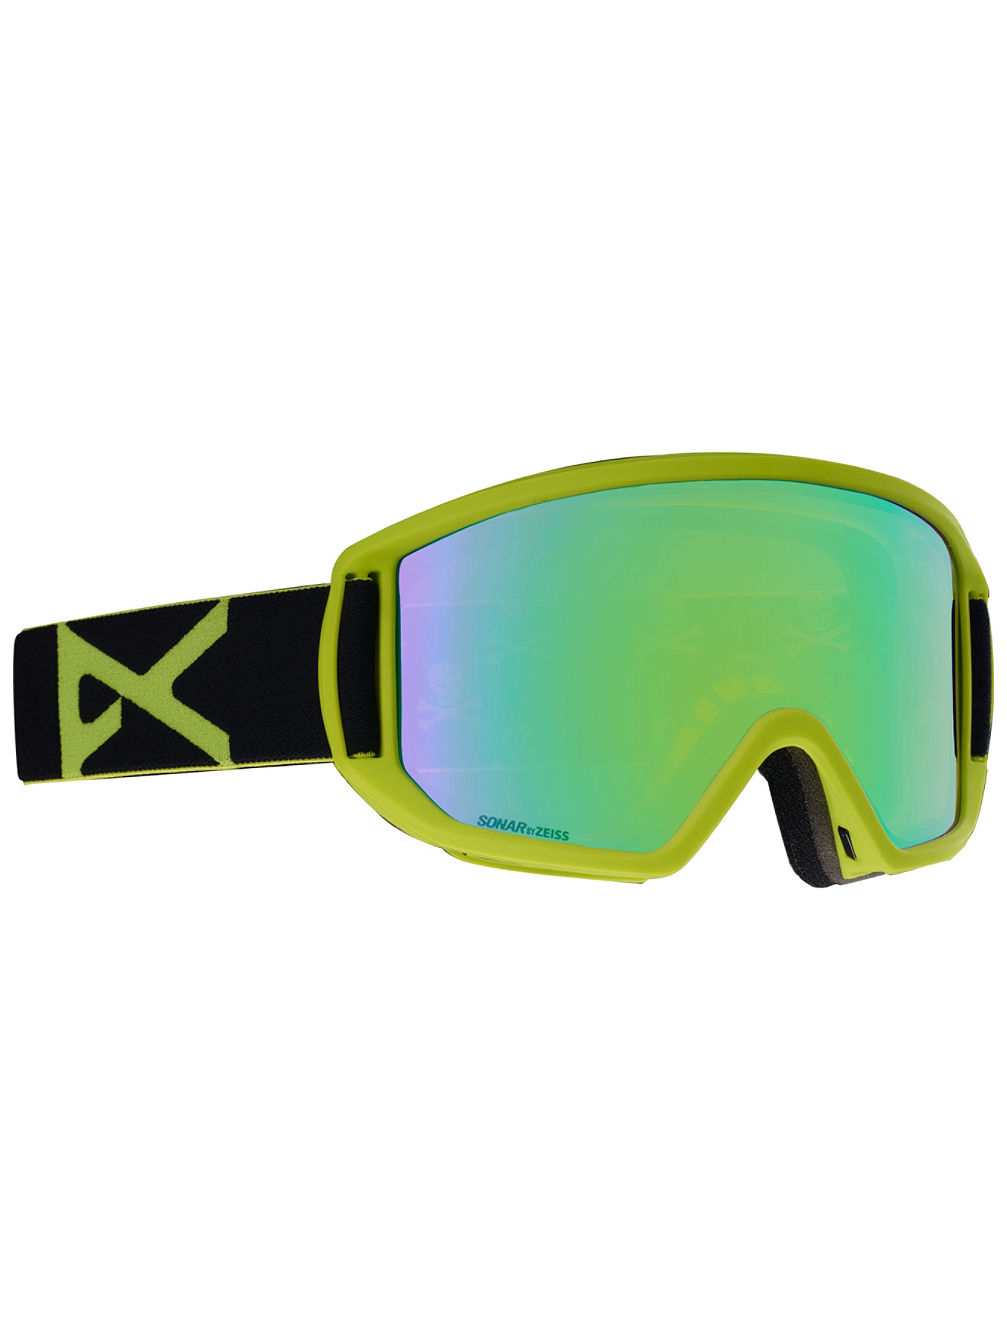 Relapse Black Green Goggle